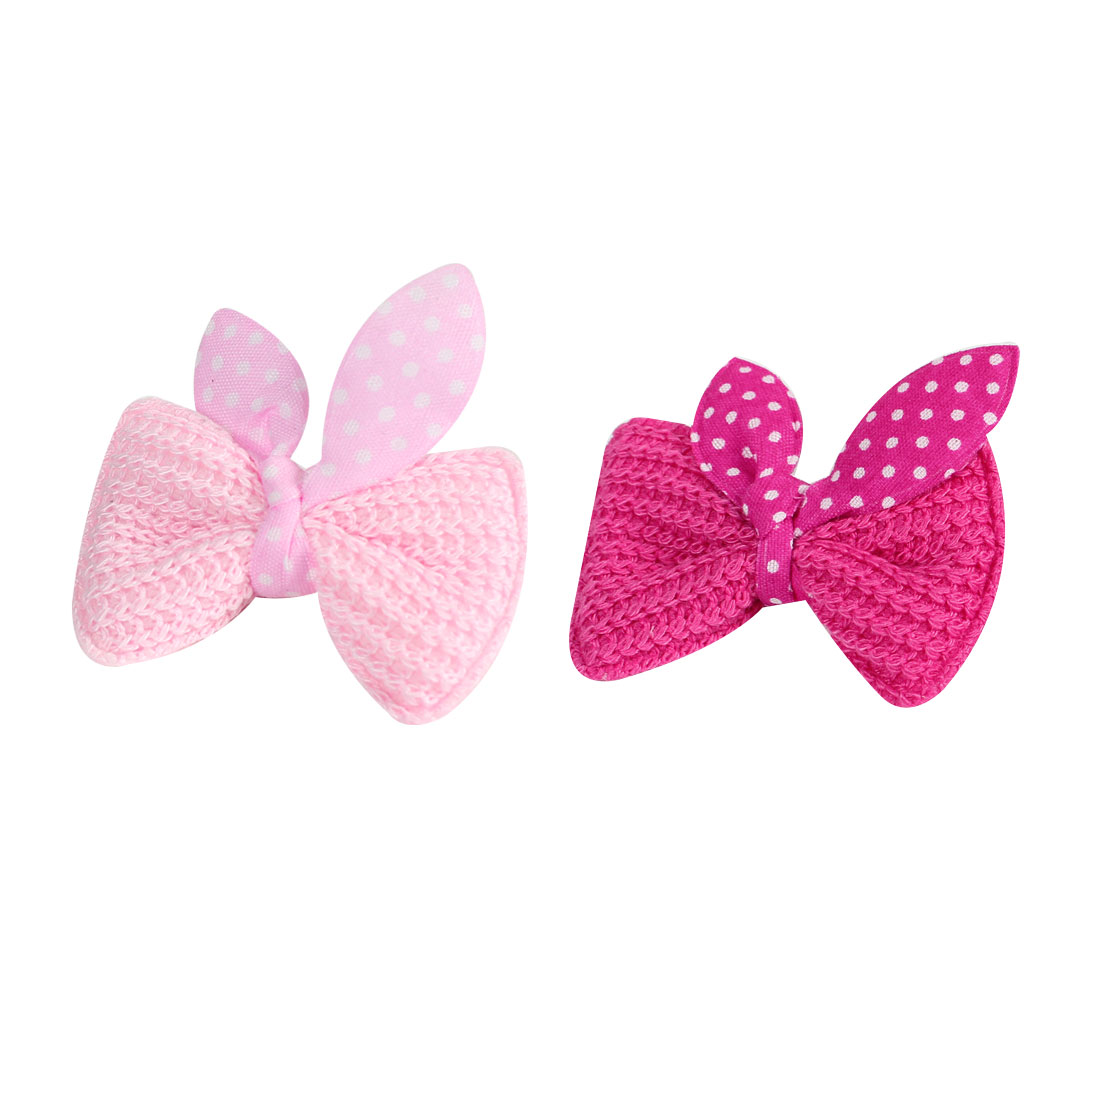 Child White Fuchsia Dotted Bow Tie Mini Single Prong Hair Clip Barrettes 2 Pcs